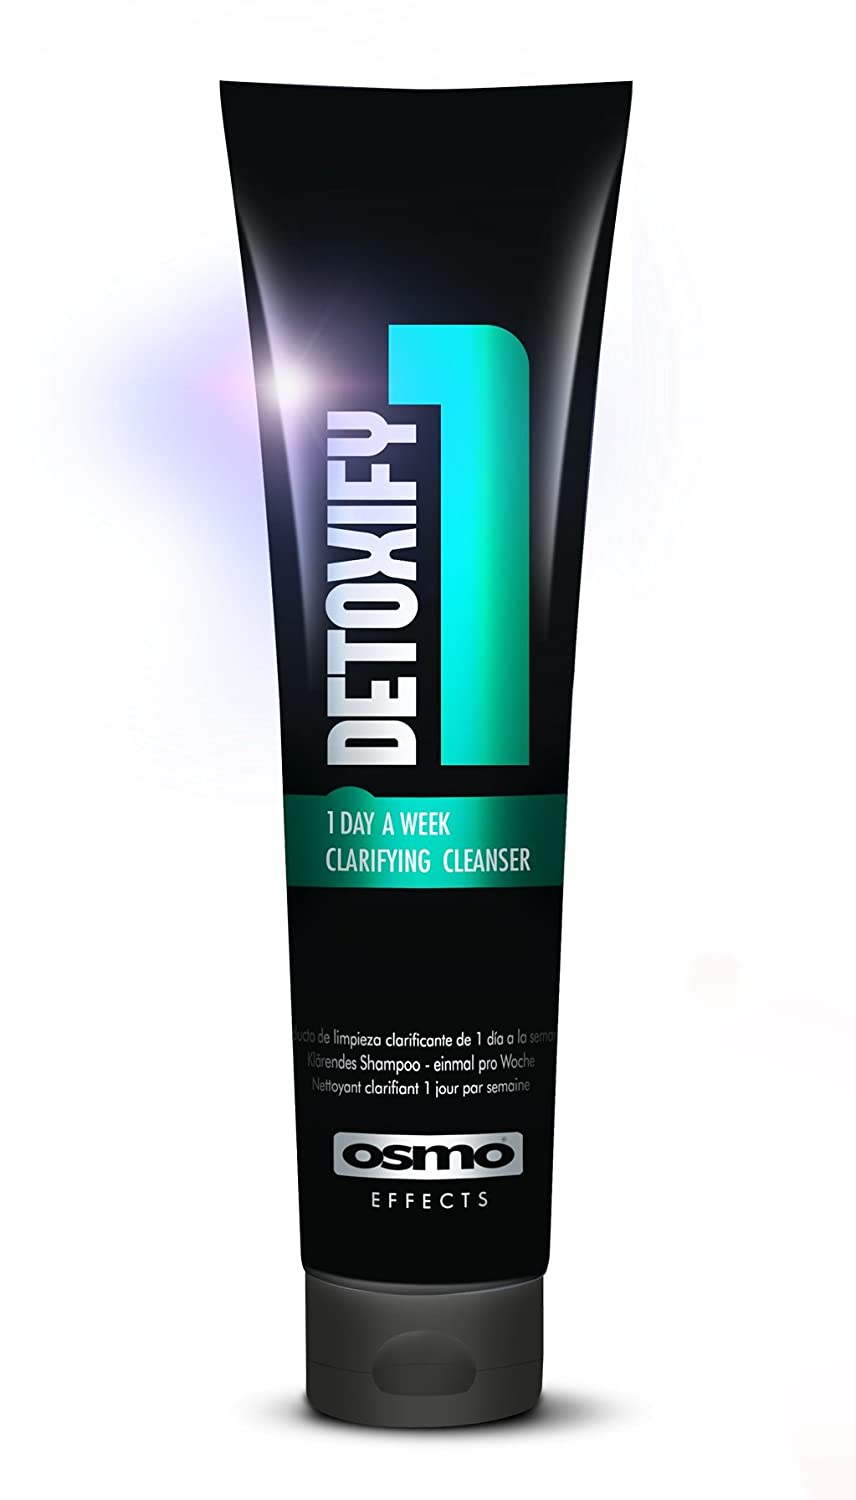 Osmo Effects Detoxify Shampoo Removes Build-Up & Impurities Whilst Retaining Hydration 250ml 061102